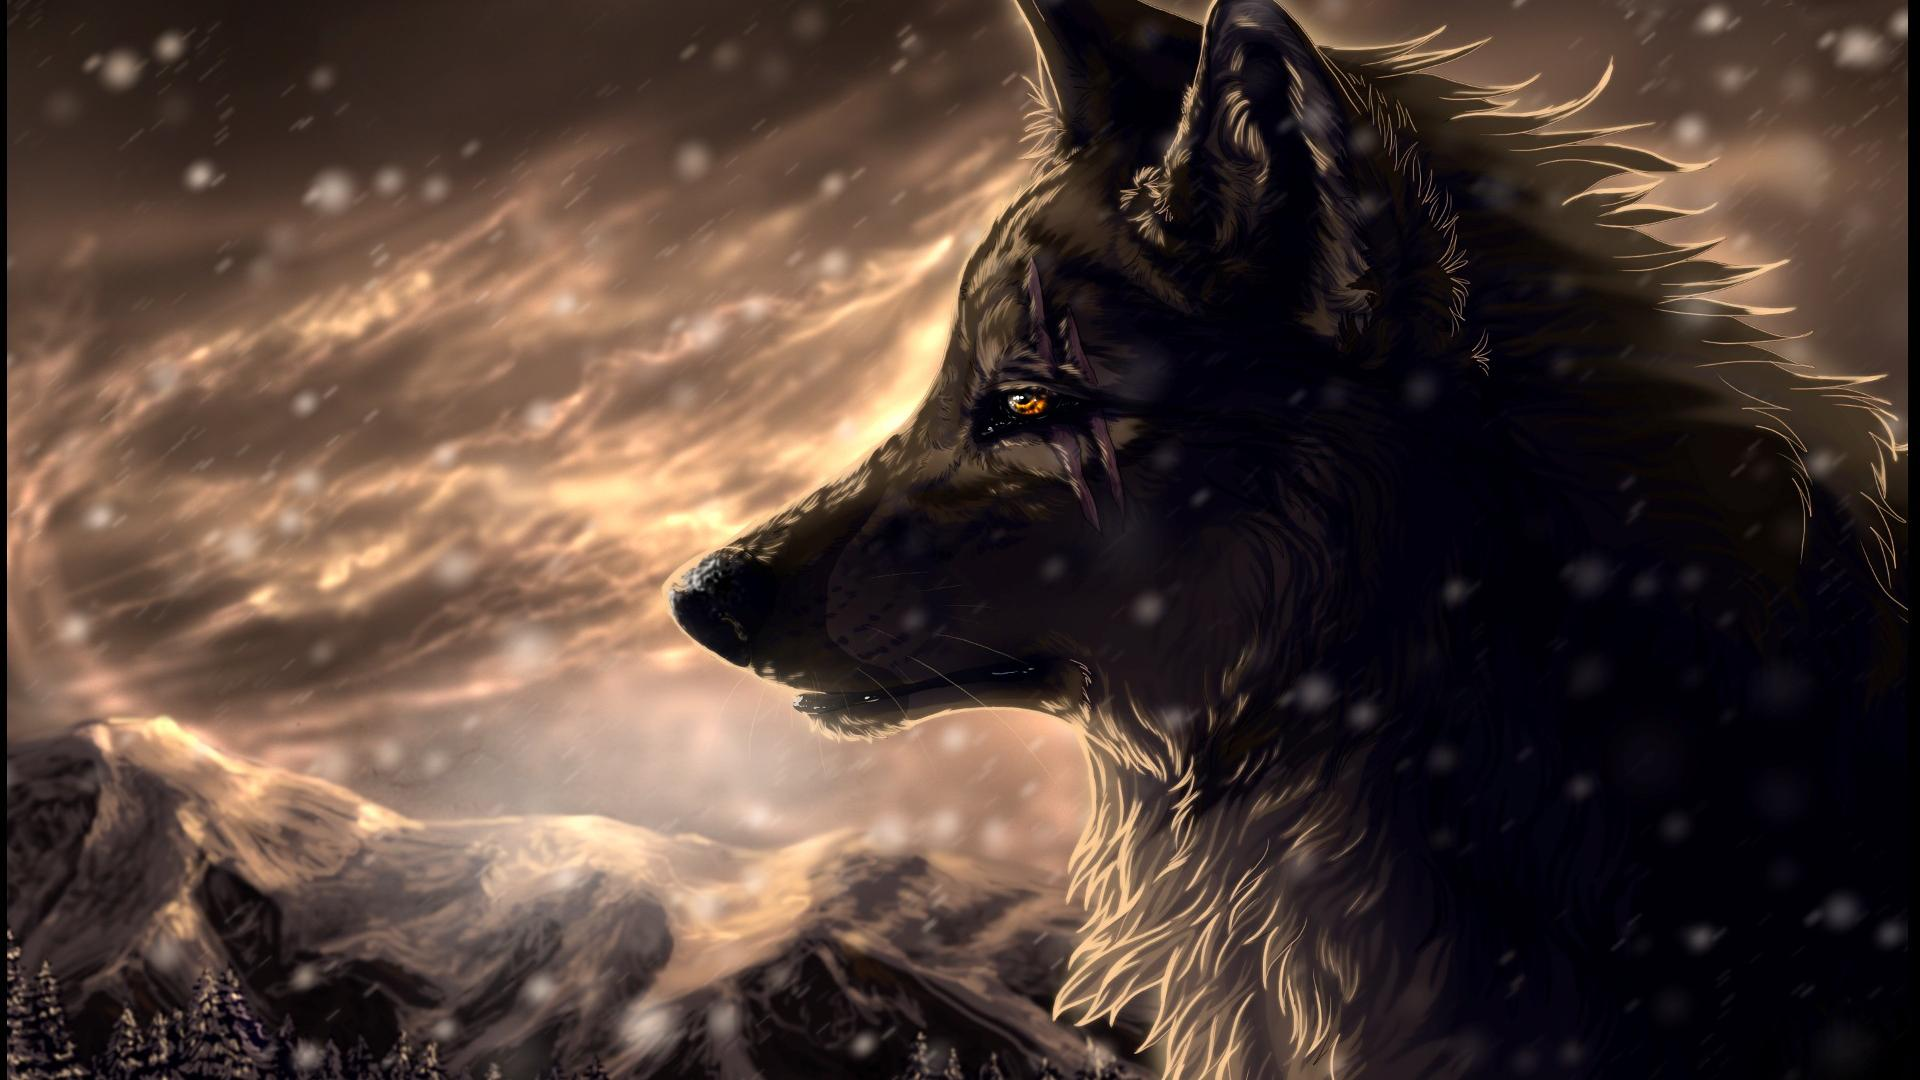 Wolf Wallpapers Free Download Pixelstalknet